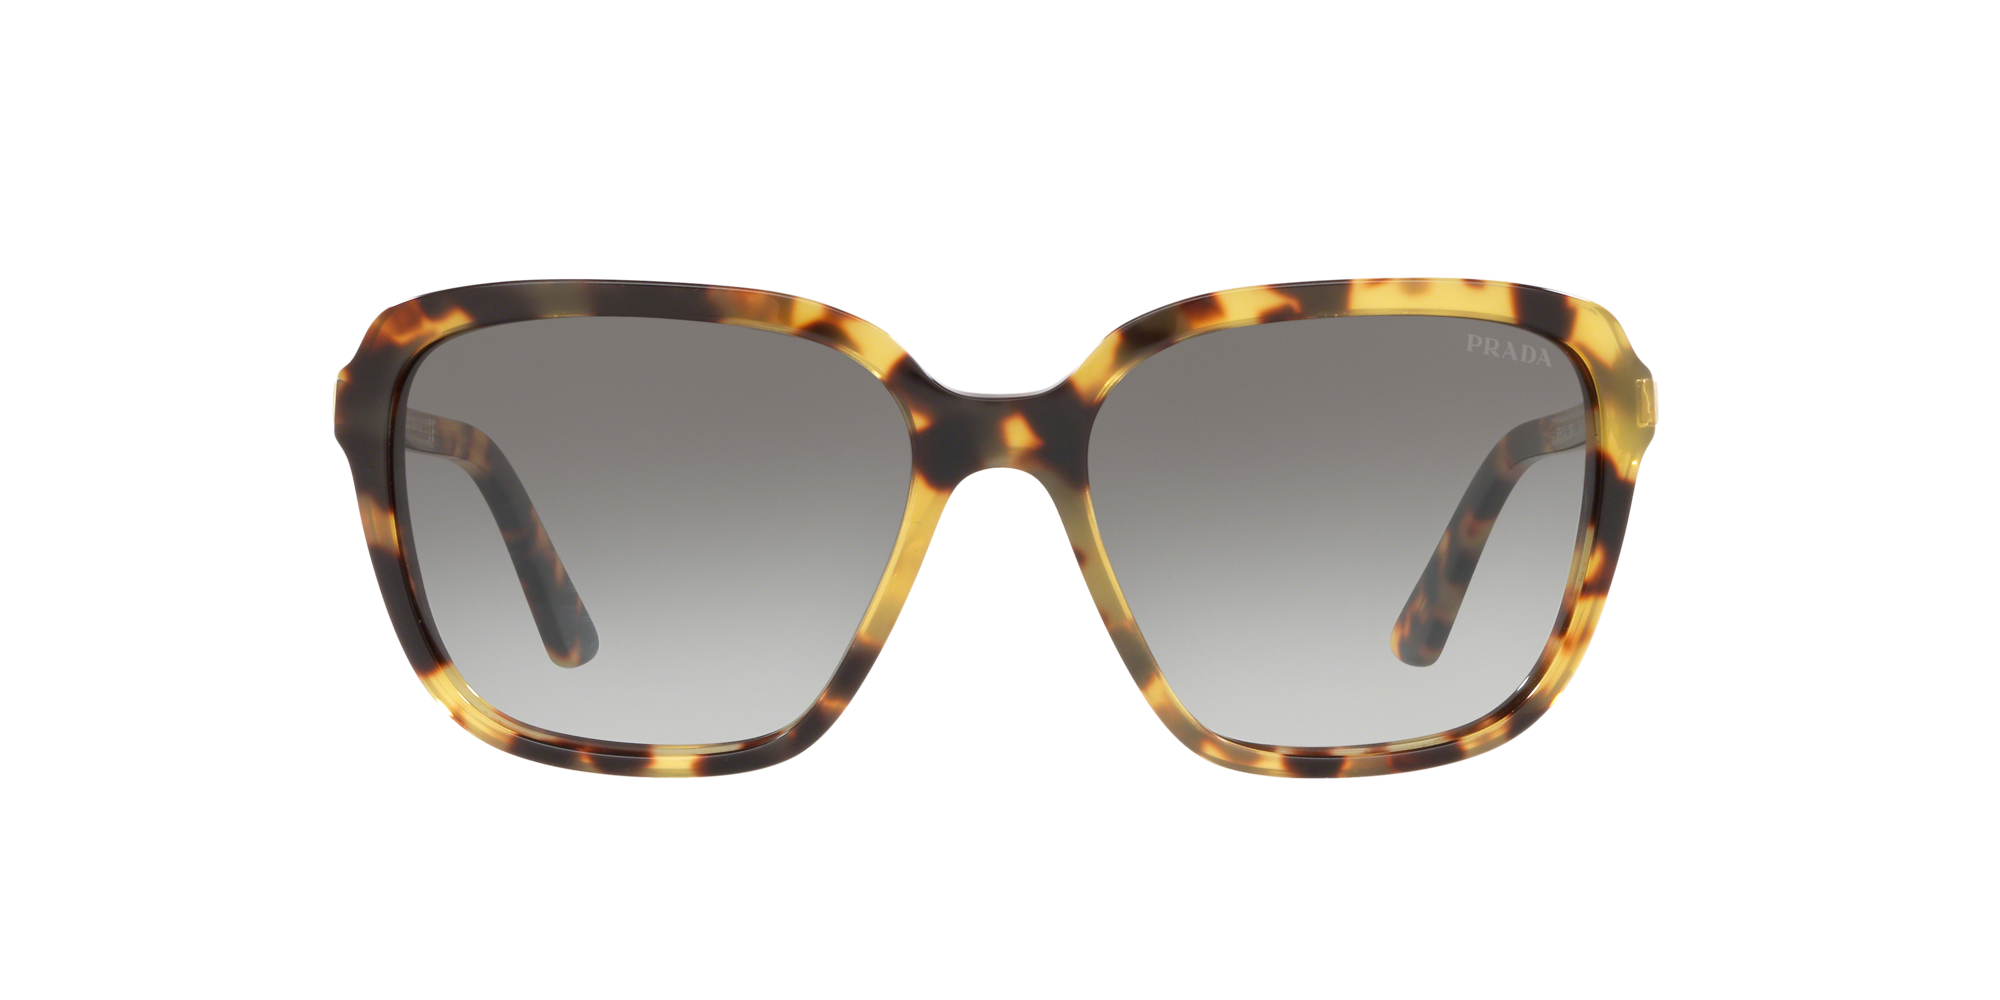 Image for PR 10VS 58 HERITAGE from LensCrafters | Glasses, Prescription Glasses Online, Eyewear